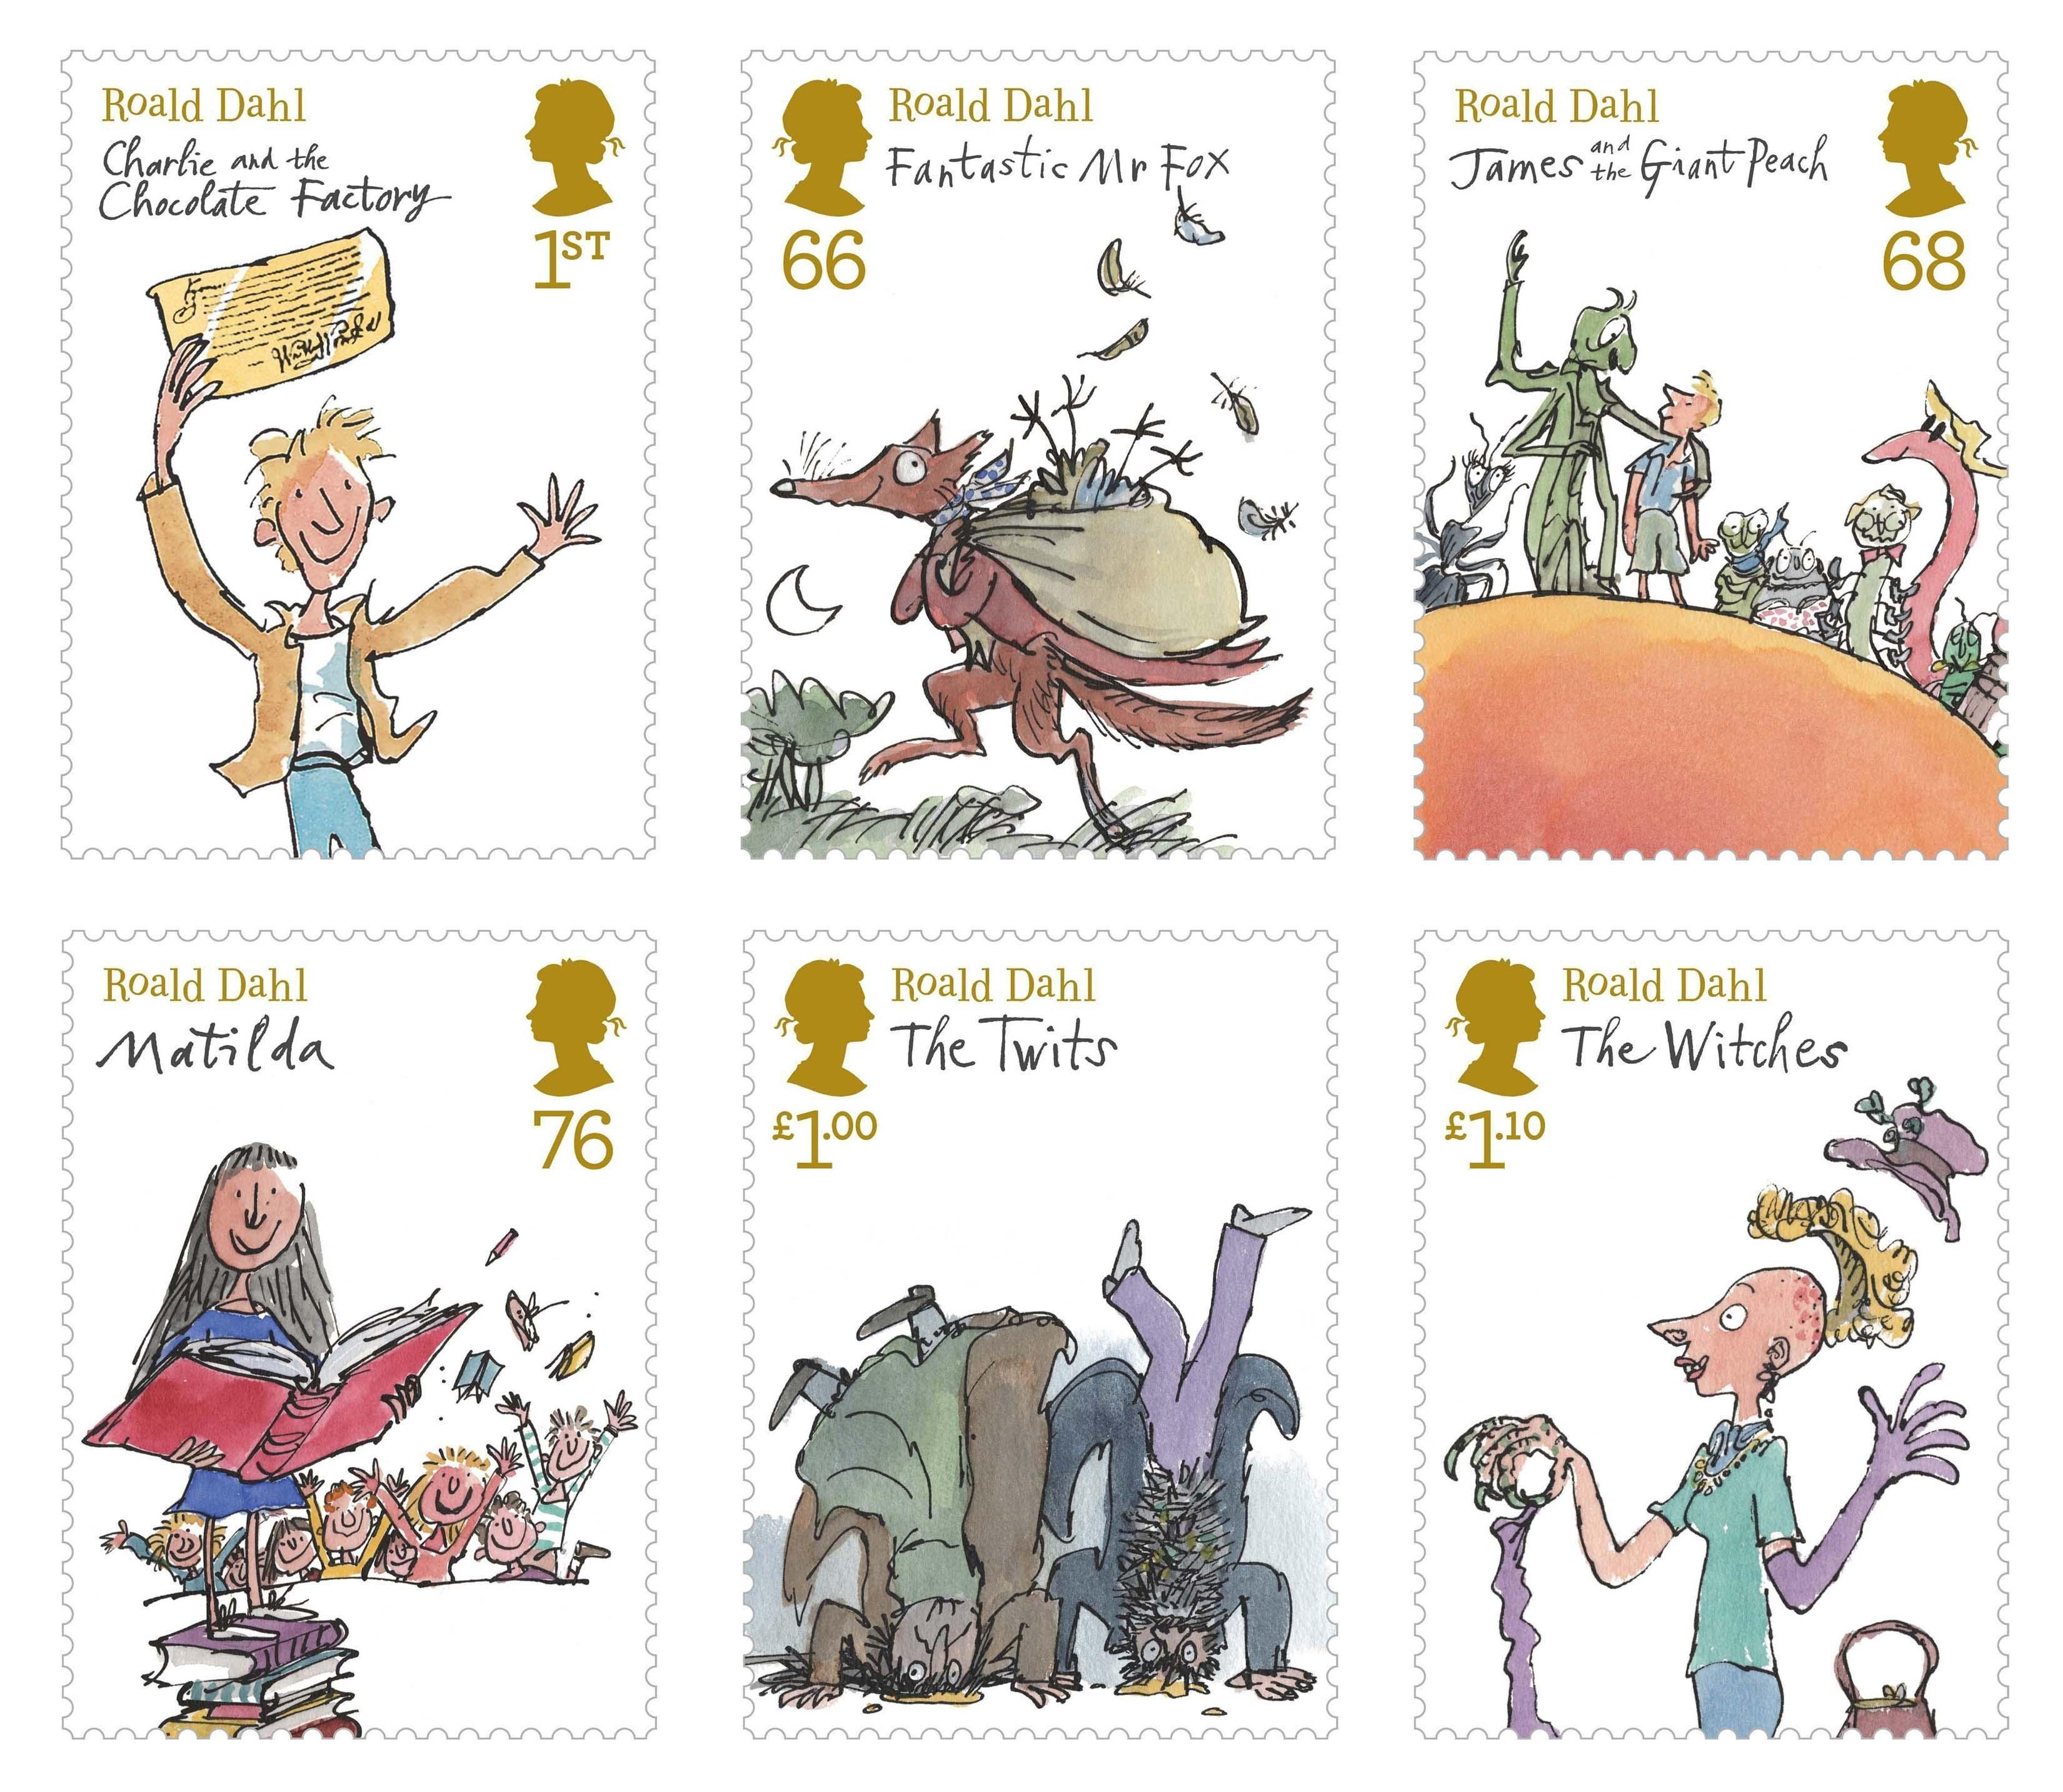 Netflix To Create Shows Based On Roald Dahl's Books